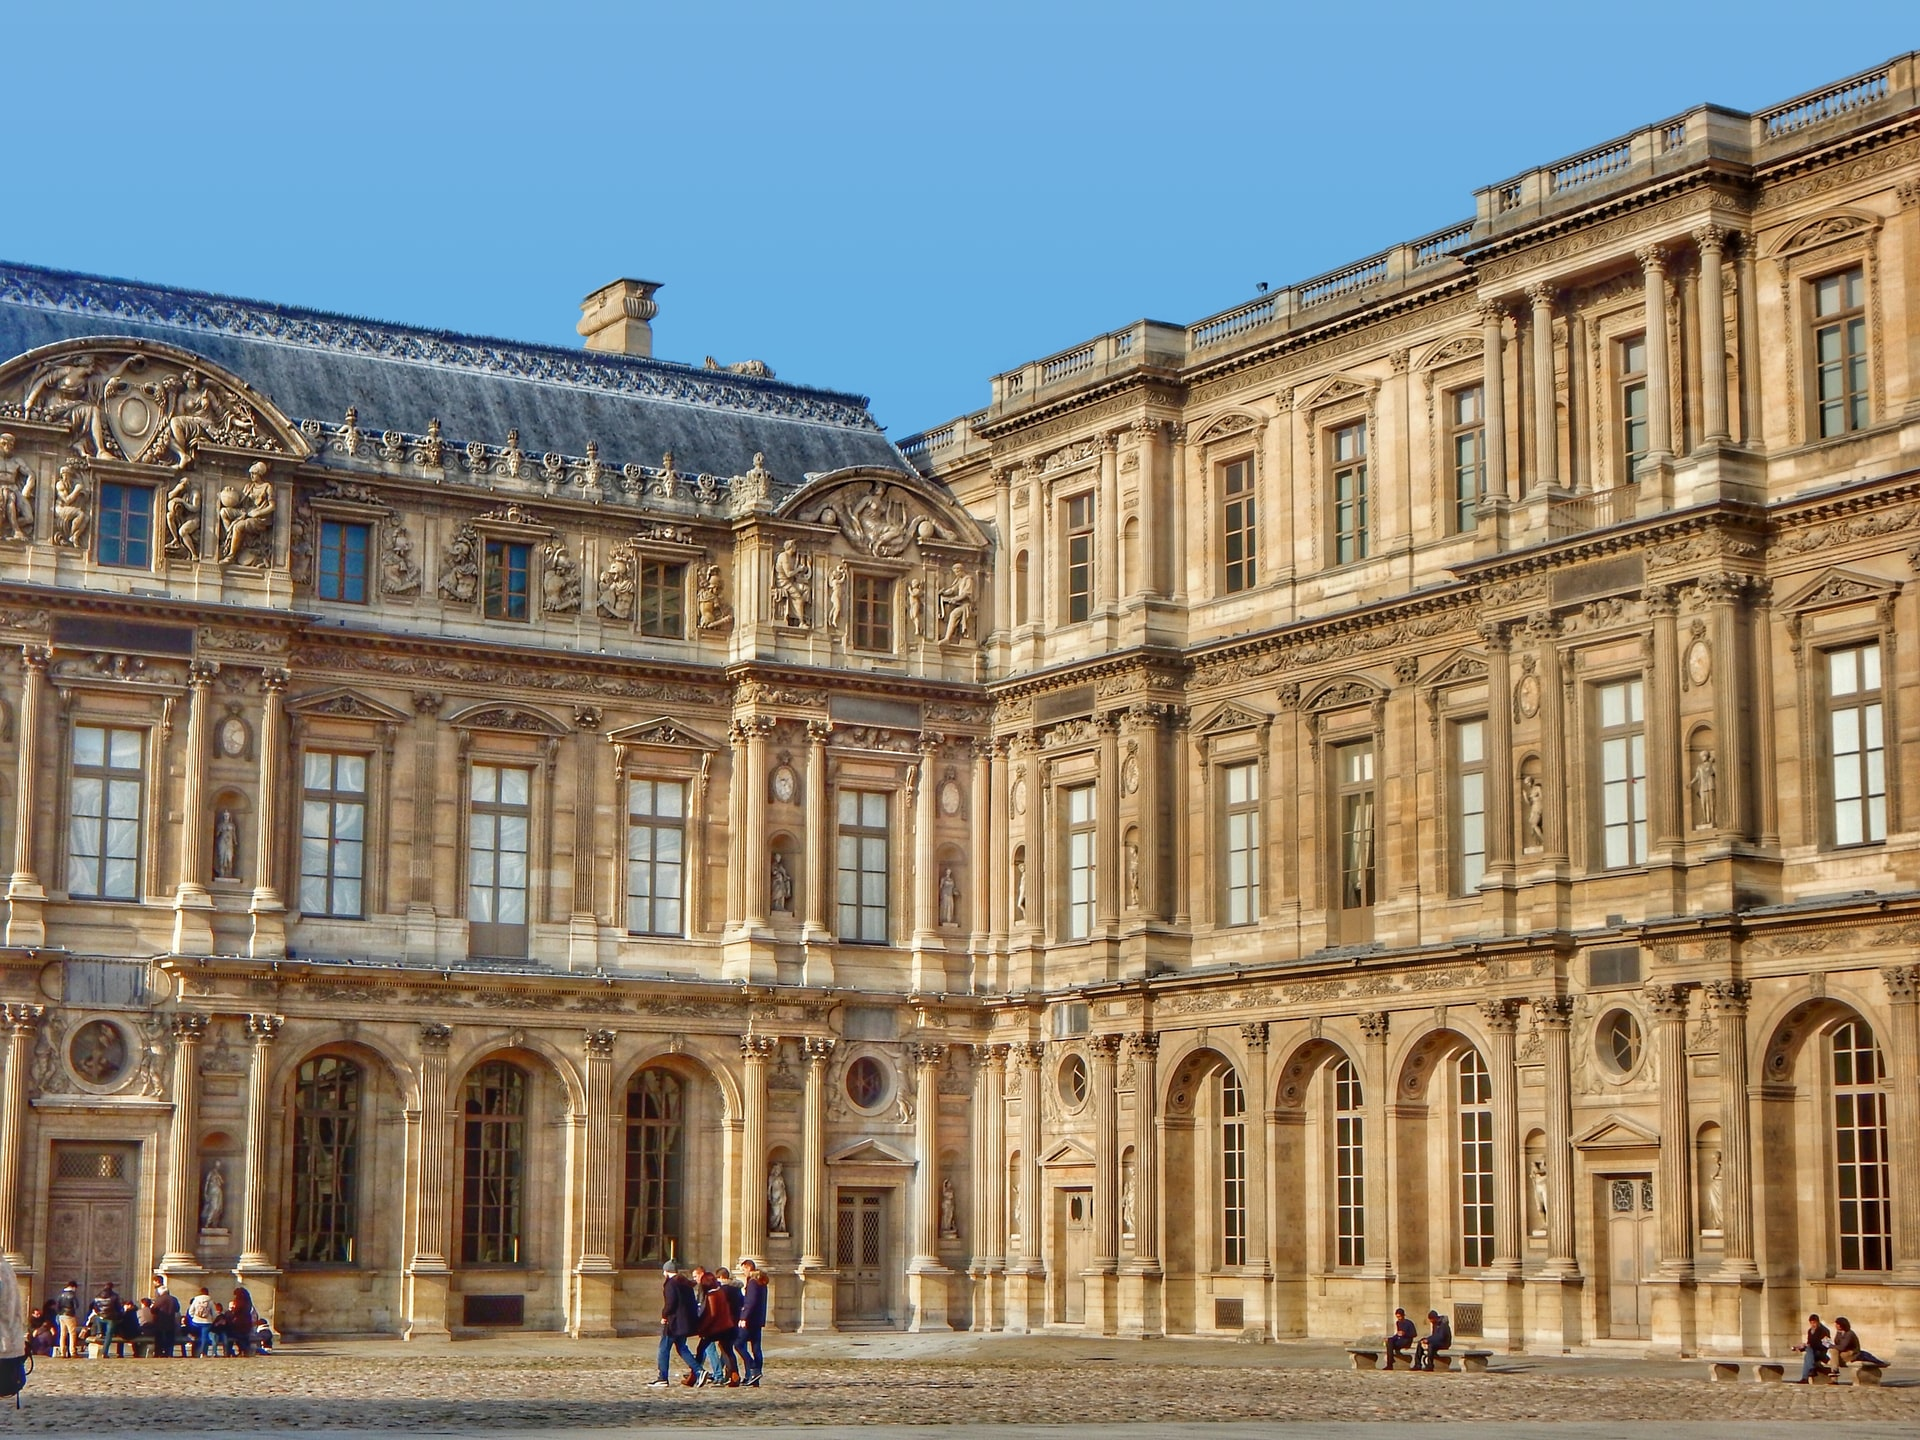 historic fort that houses the Louvre